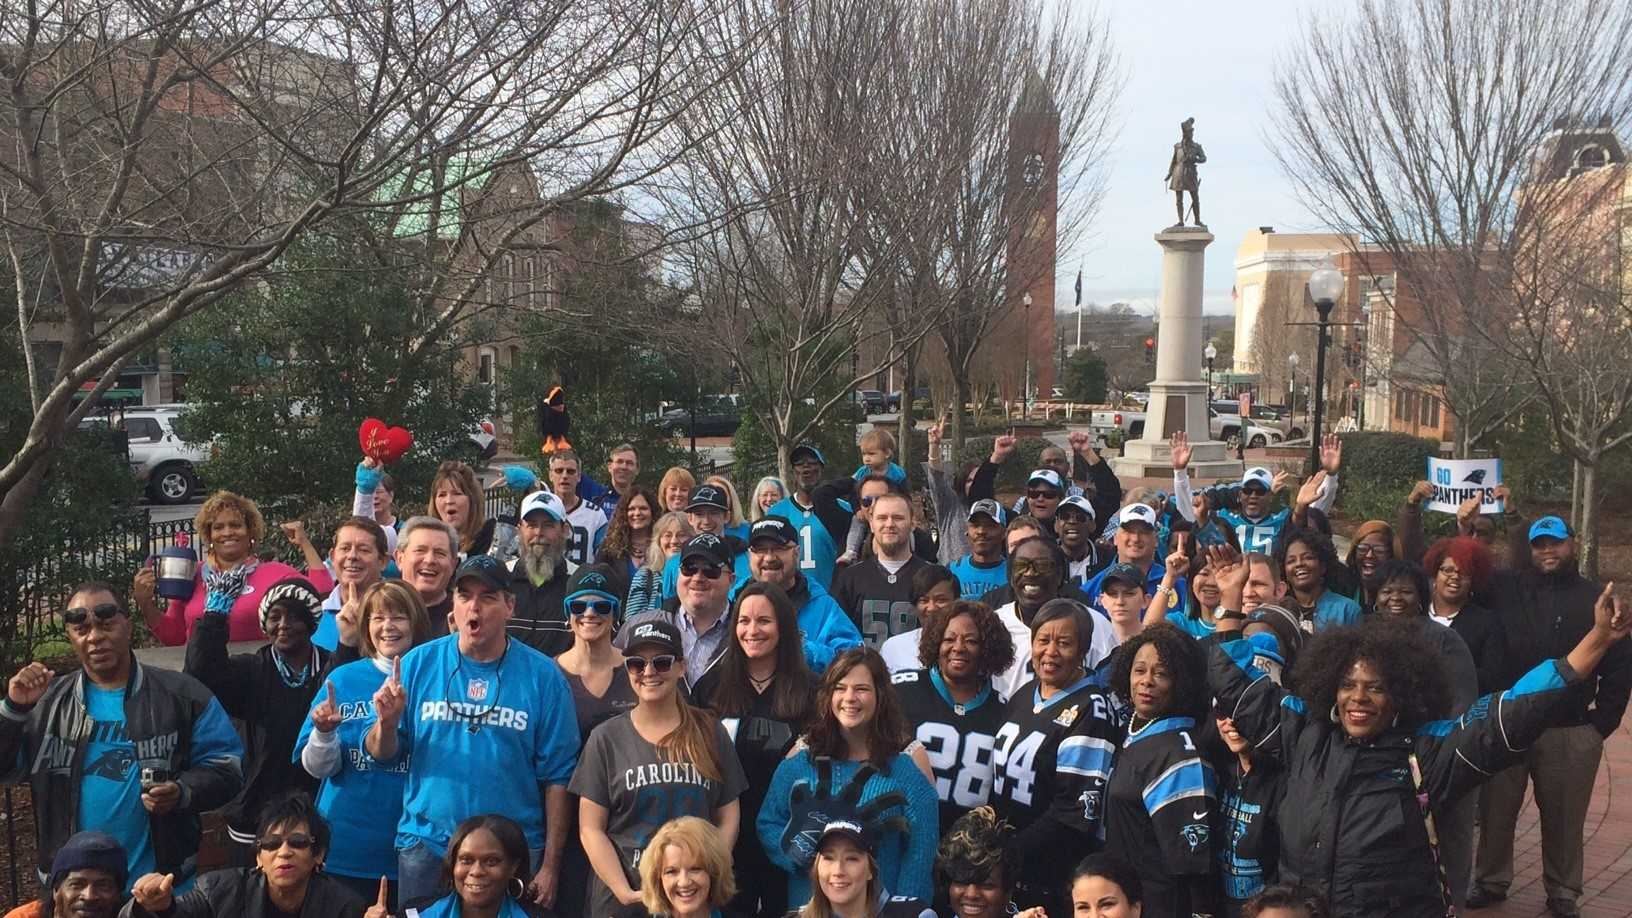 Panthers fans gathered in Downtown Spartanburg to take a group photo.